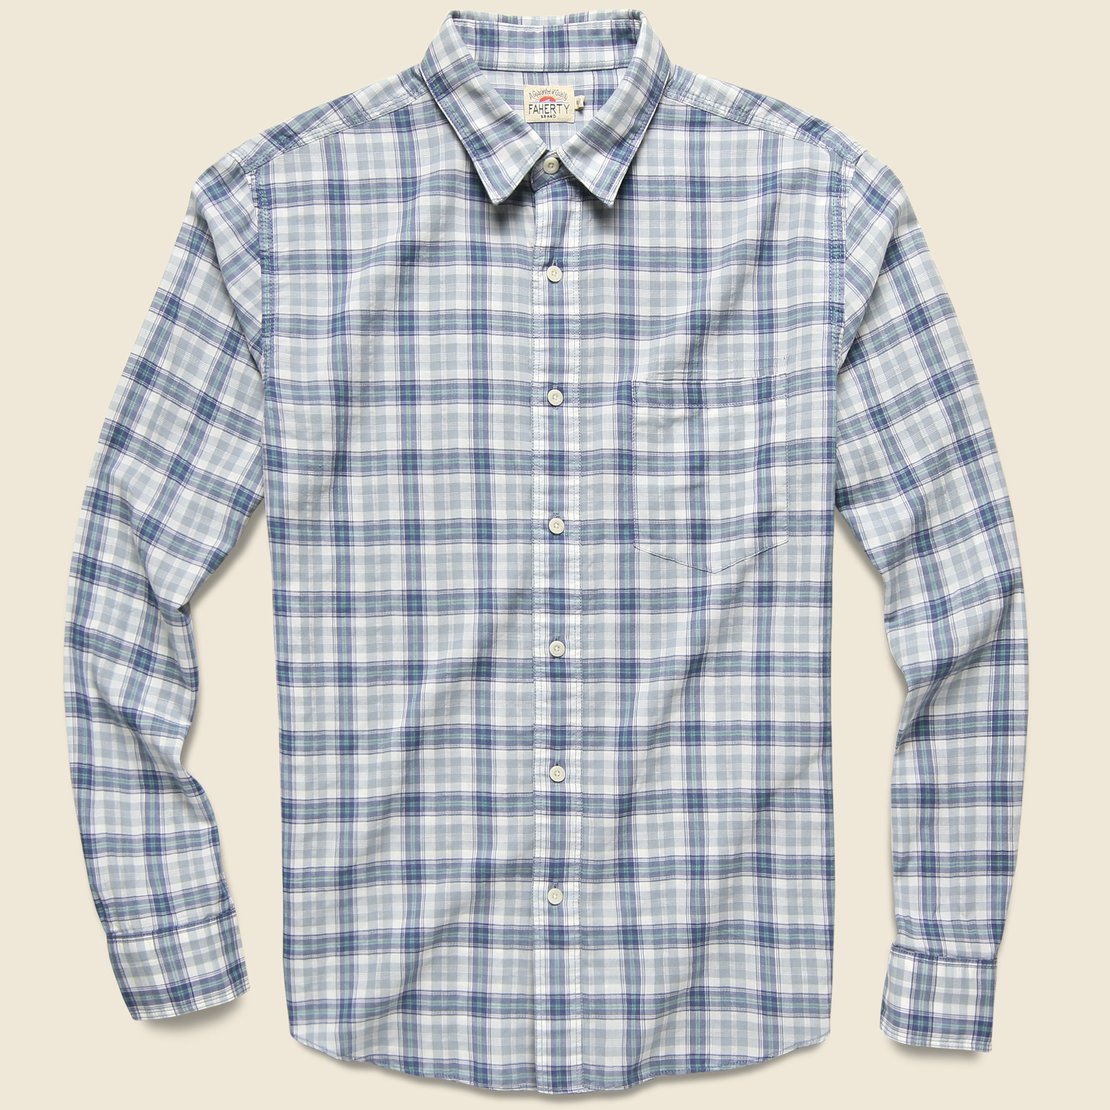 Faherty Everyday Shirt - Acadia Plaid